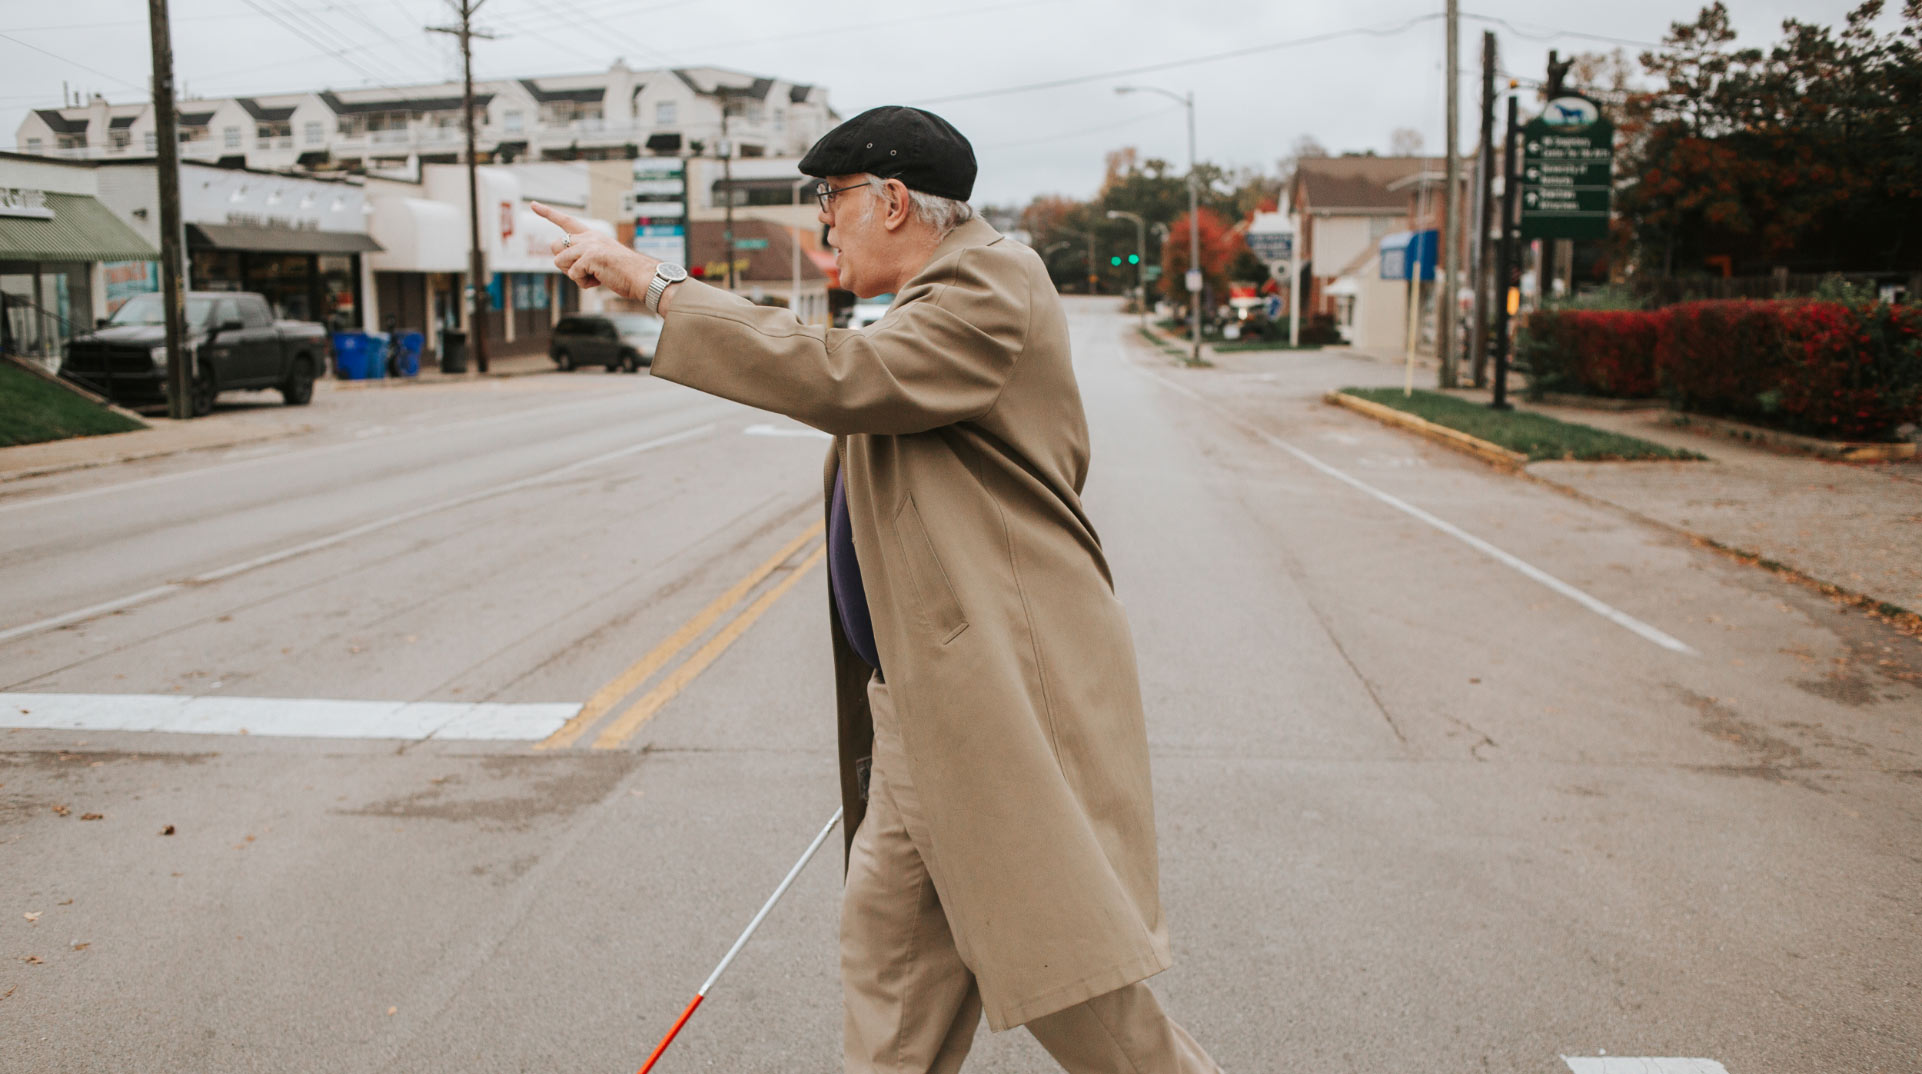 Donald is crossing the street using his cane, and points forward ahead of him.